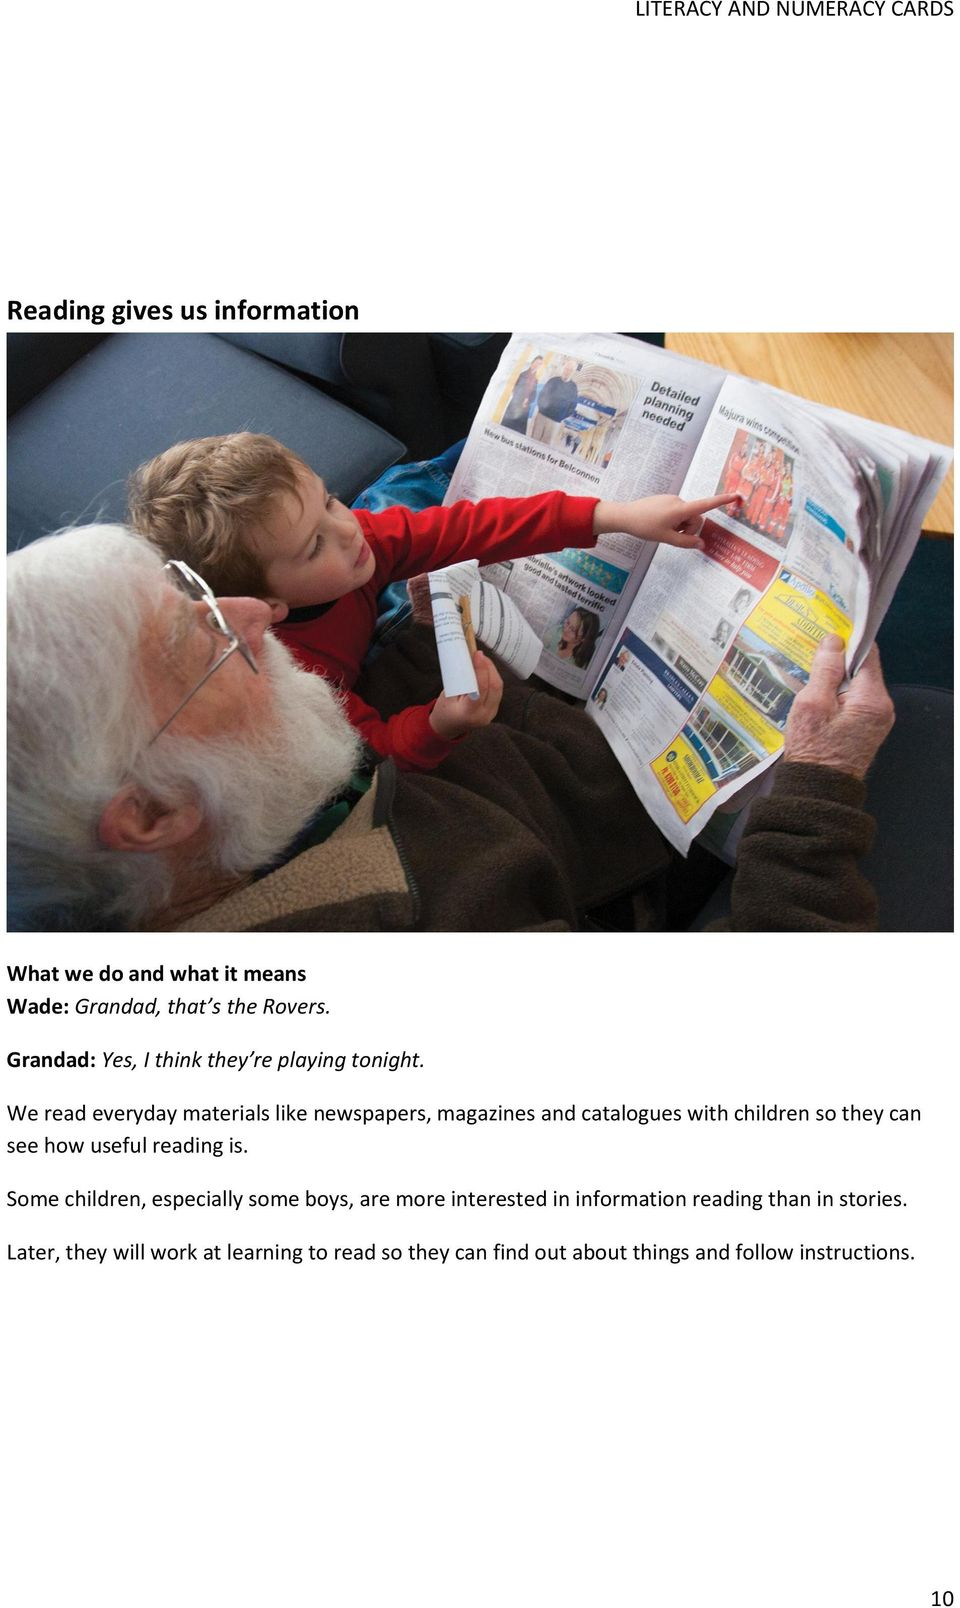 We read everyday materials like newspapers, magazines and catalogues with children so they can see how